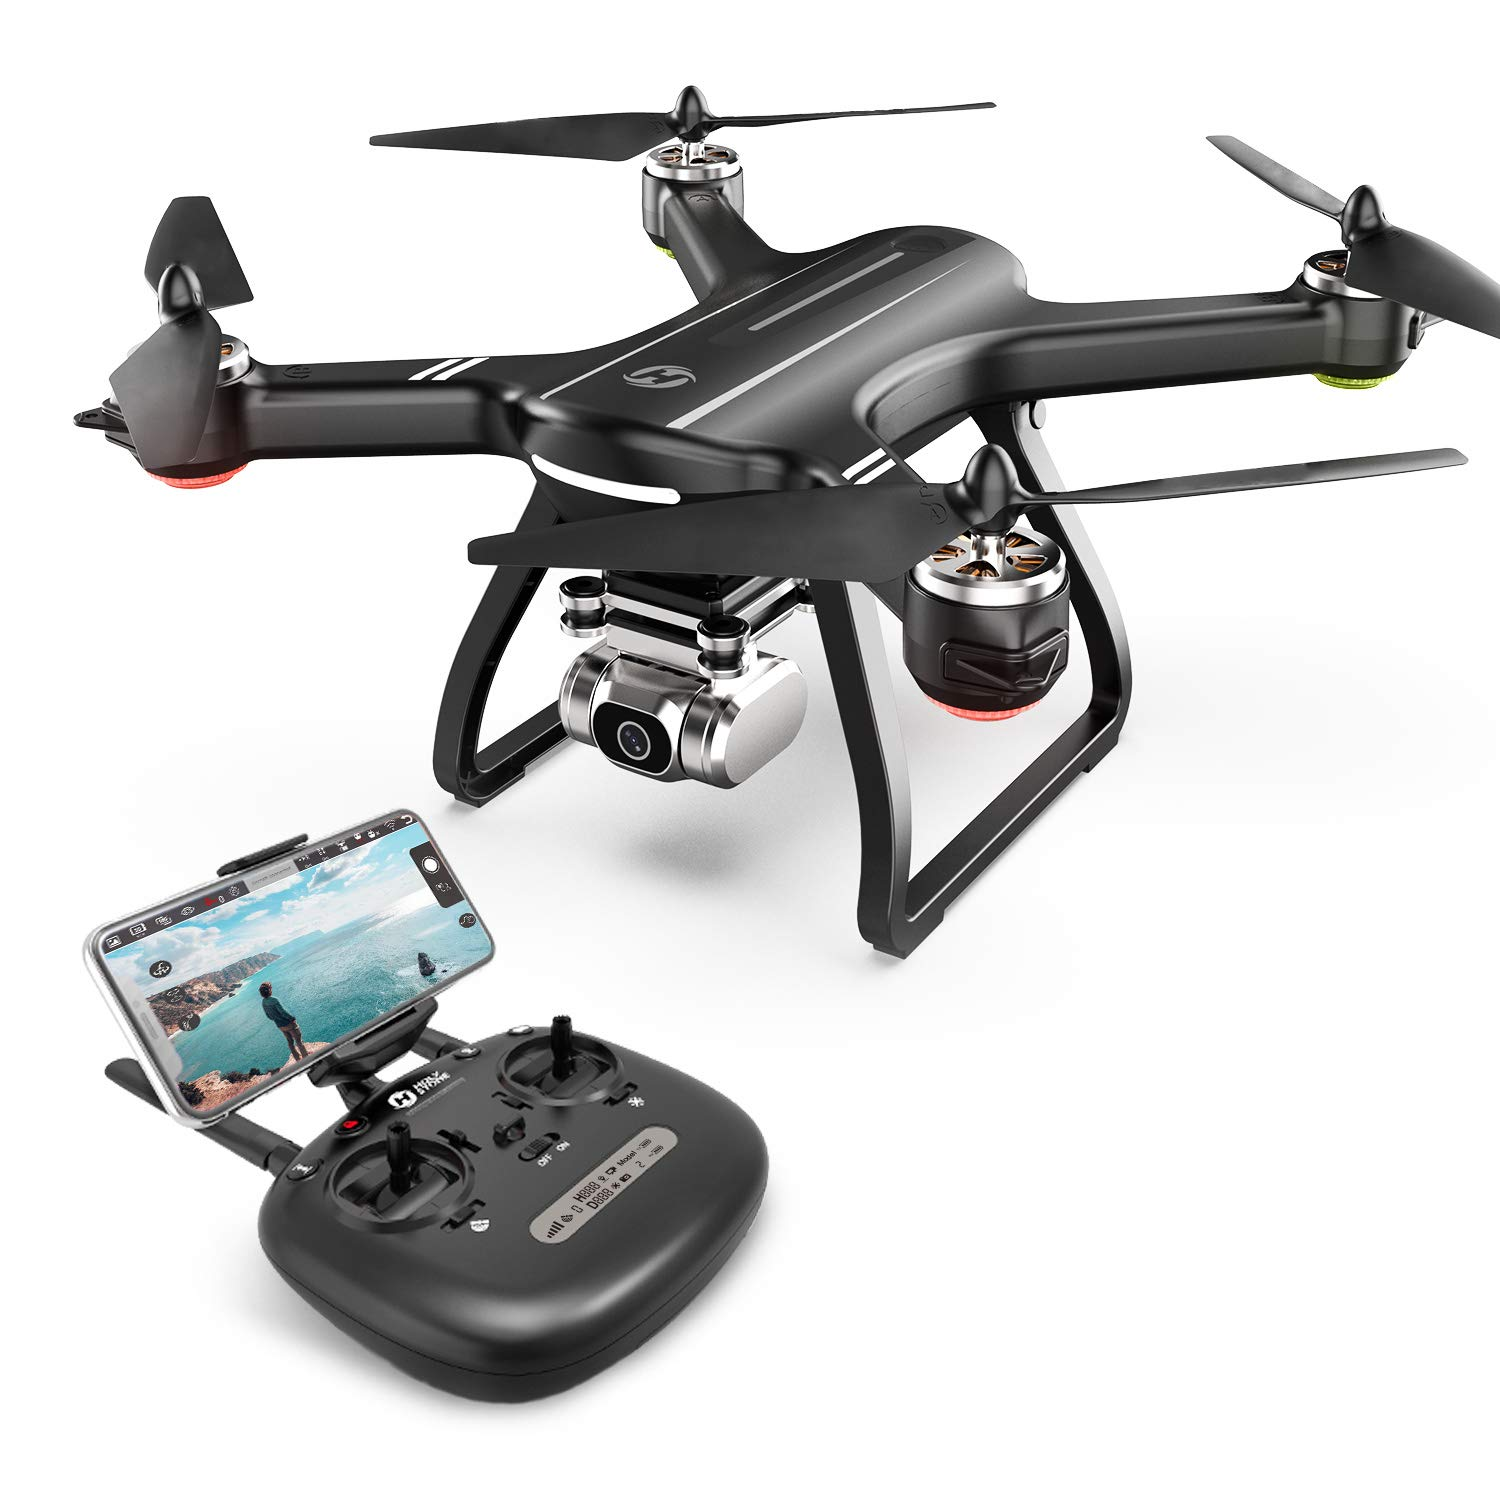 holy-stone-hs700d-fpv-drone-with-2k-fhd-camera-live-video-and-gps-return-home-rc-quadcopter-for-adults-beginners-with-brushless-motor-follow-me-5g-wifi-transmission-modular-battery-advanc